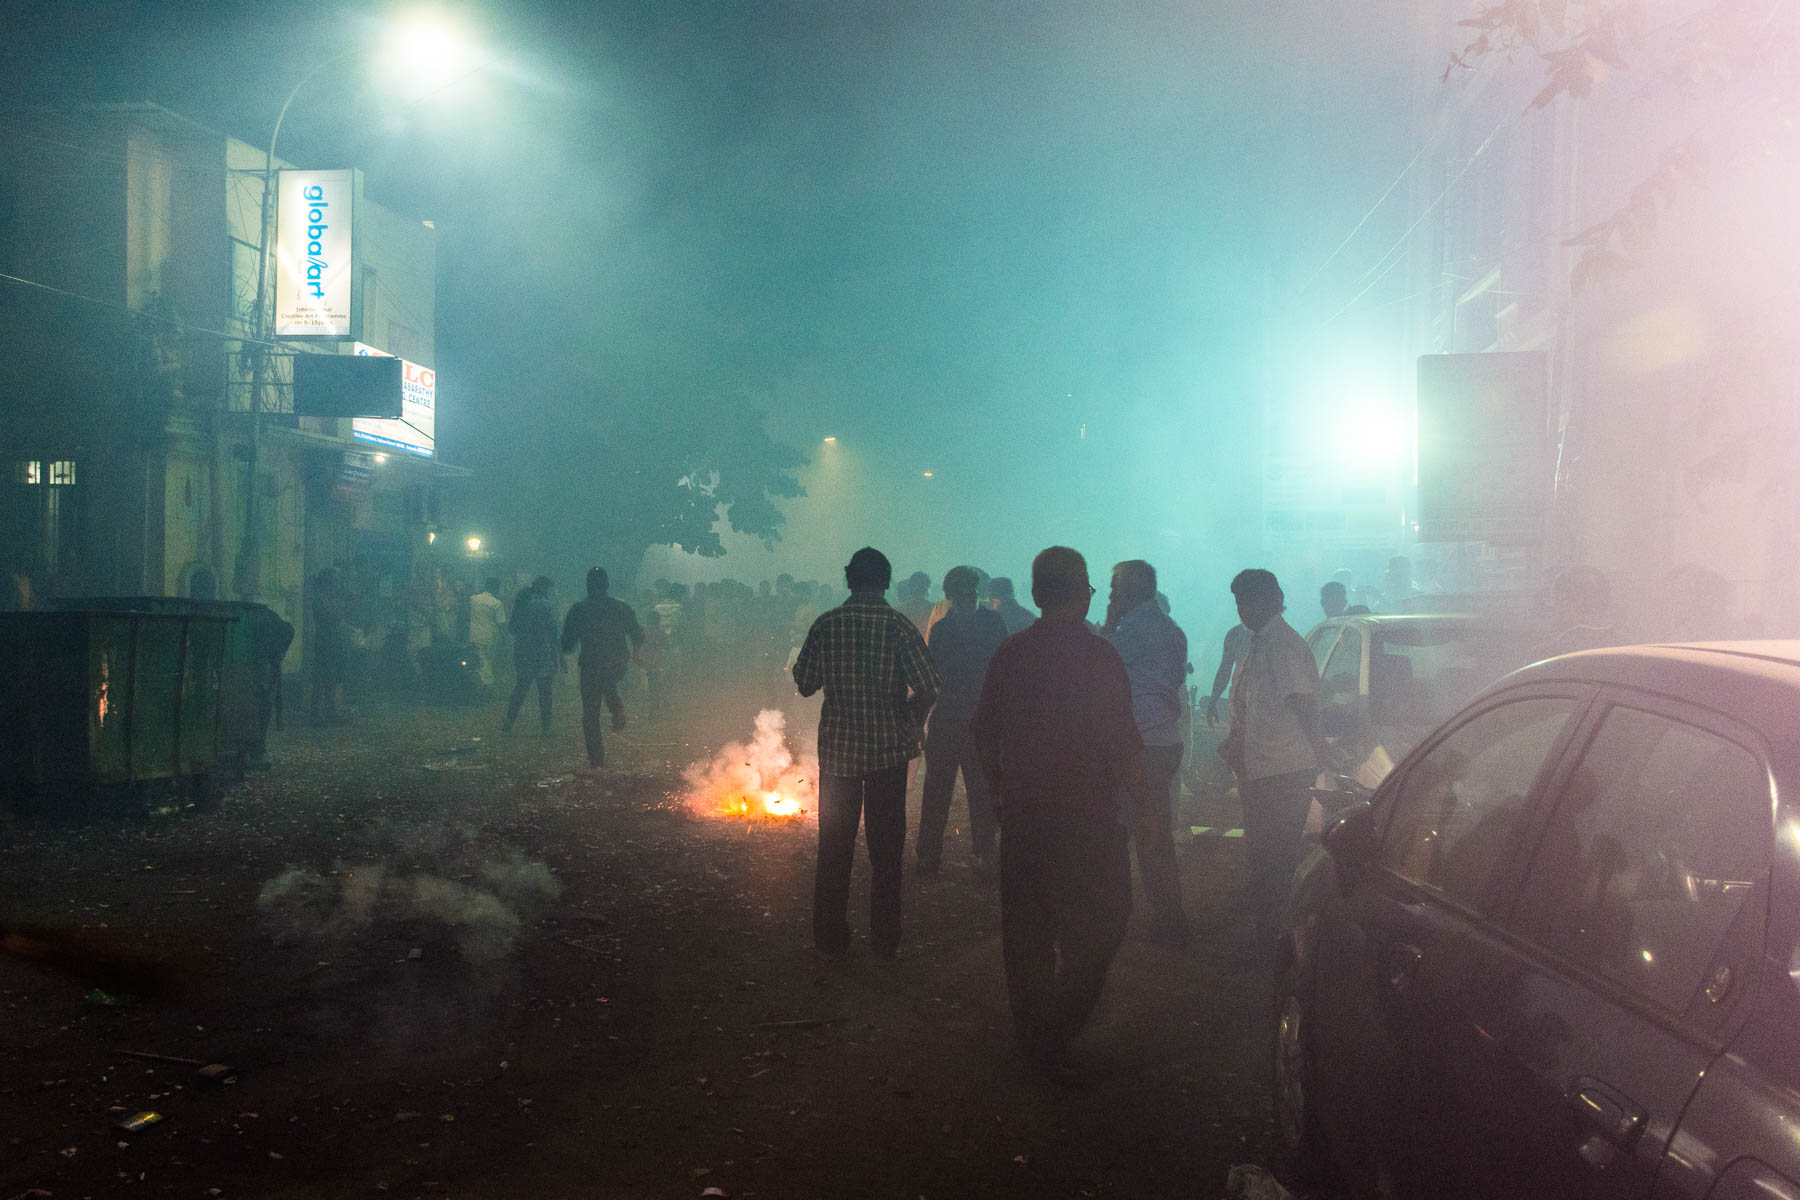 Entering the war zone that emerges while celebrating Diwali in Chennai, India - Lost With Purpose